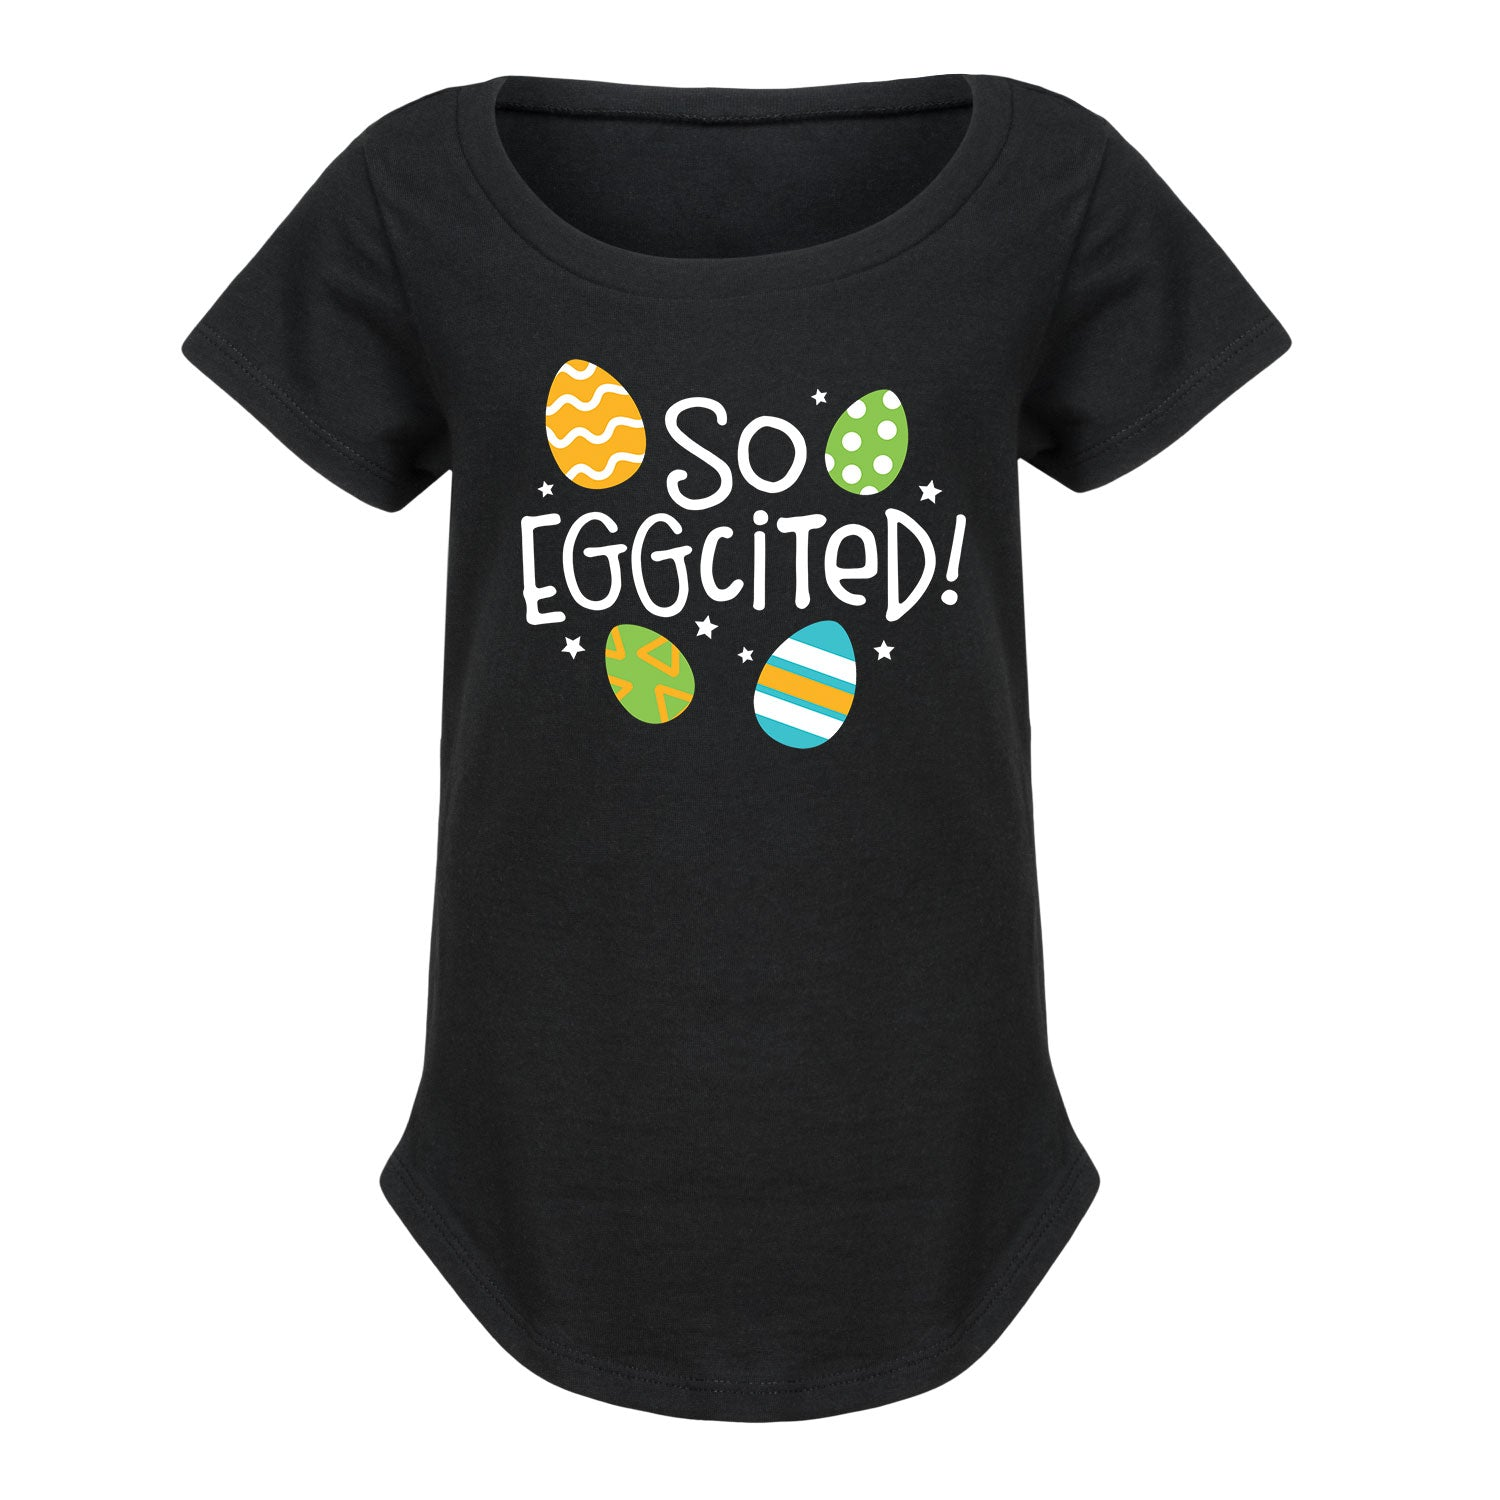 So Eggcited - Toddler Girl Short Sleeve T-Shirt